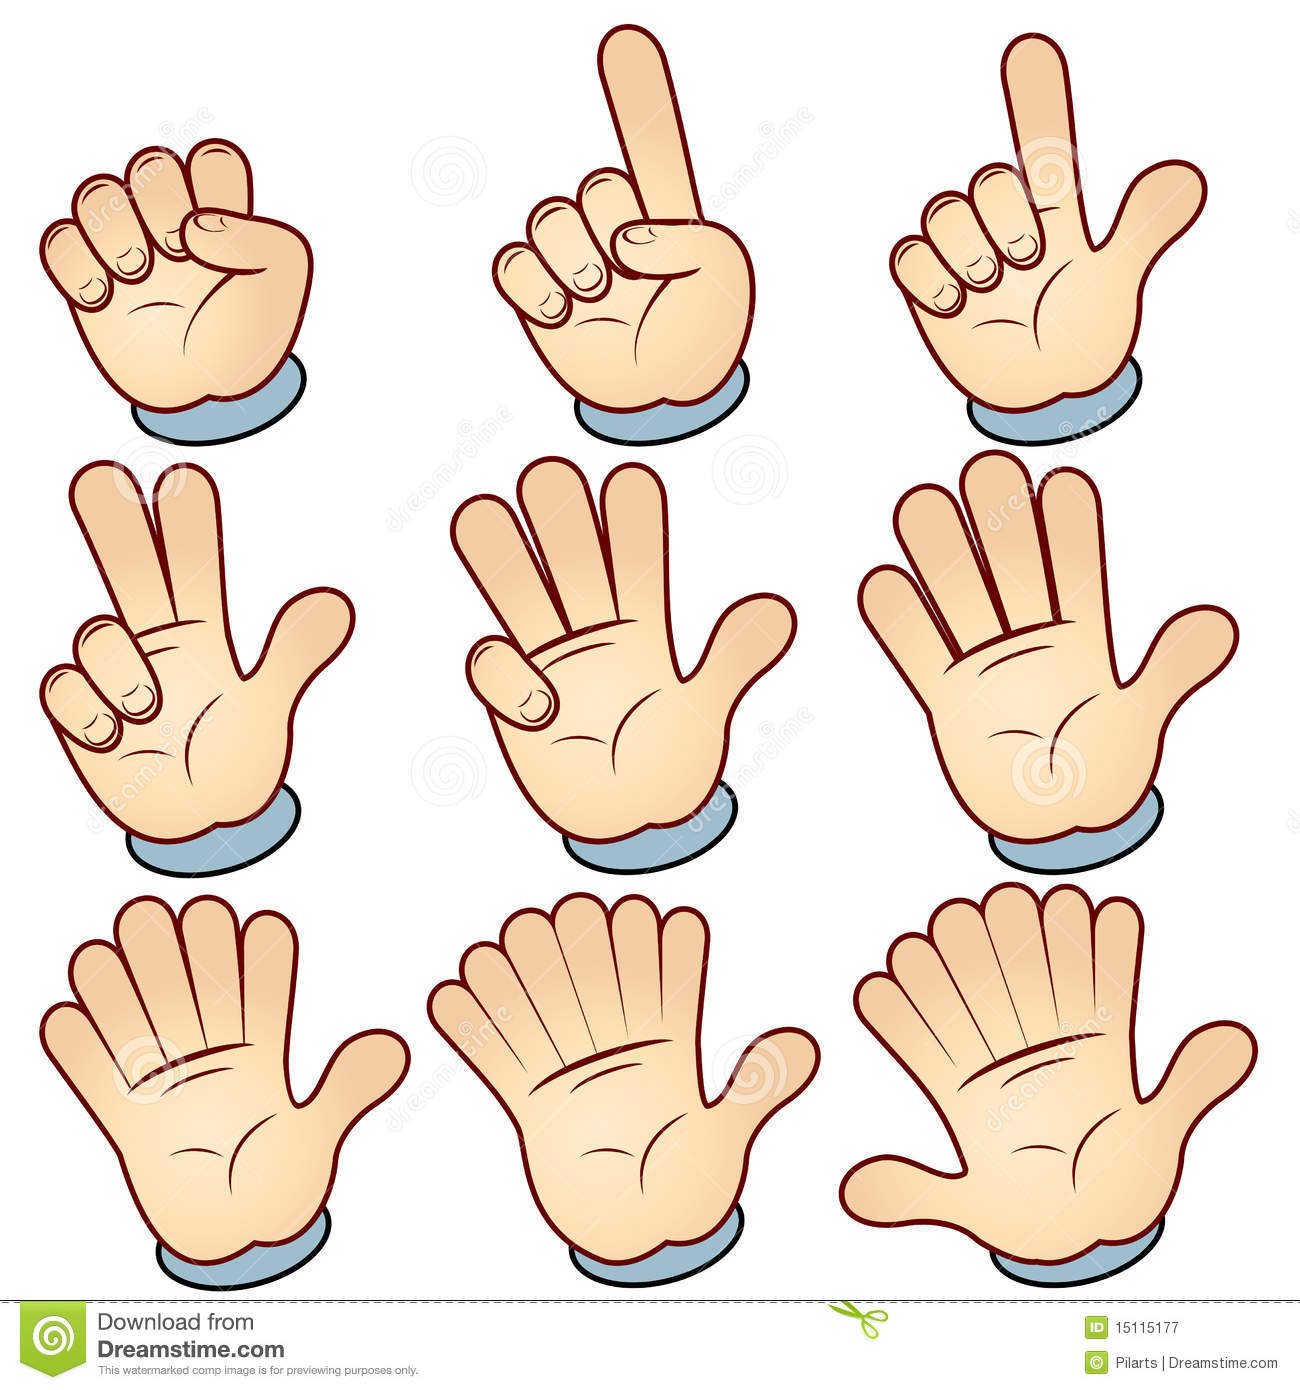 Counting Hand Royalty Free Stock Photography